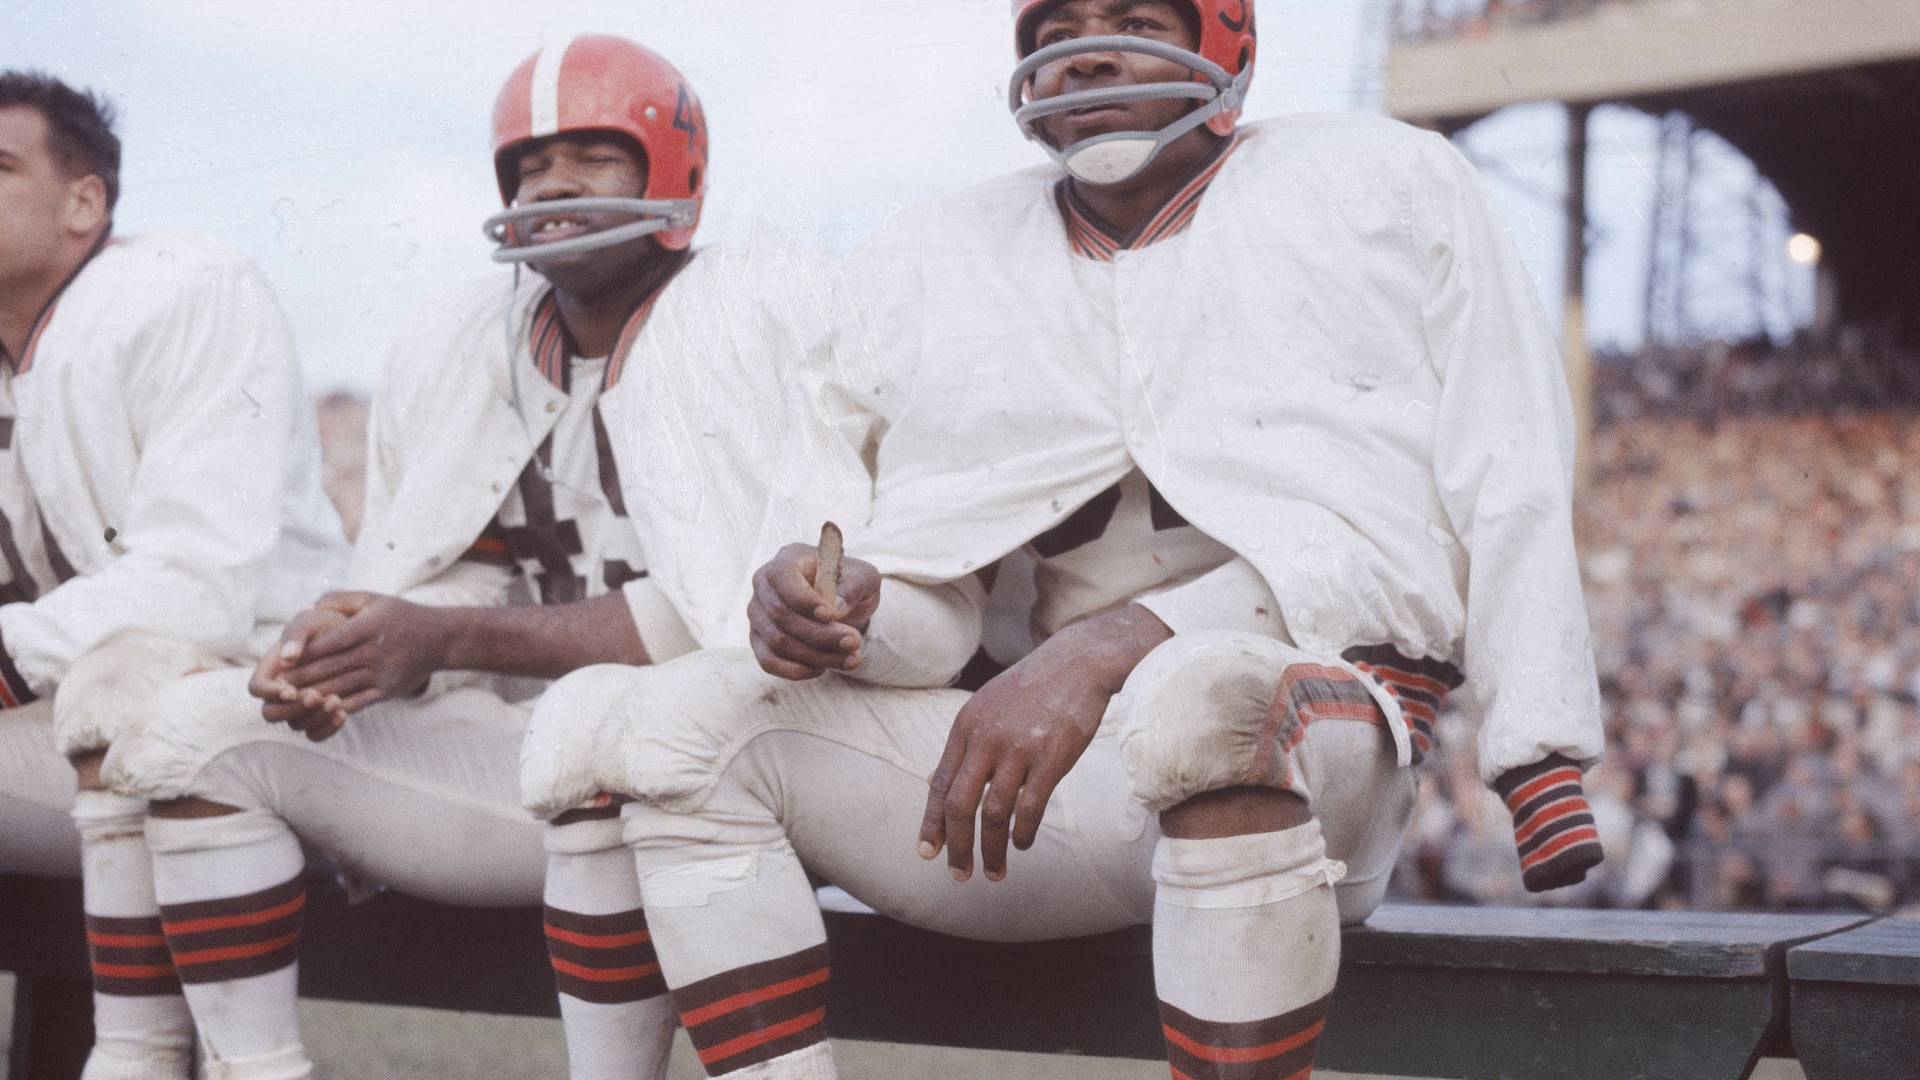 Fill out your Cleveland Browns all-time bracket to make up for no March Madness